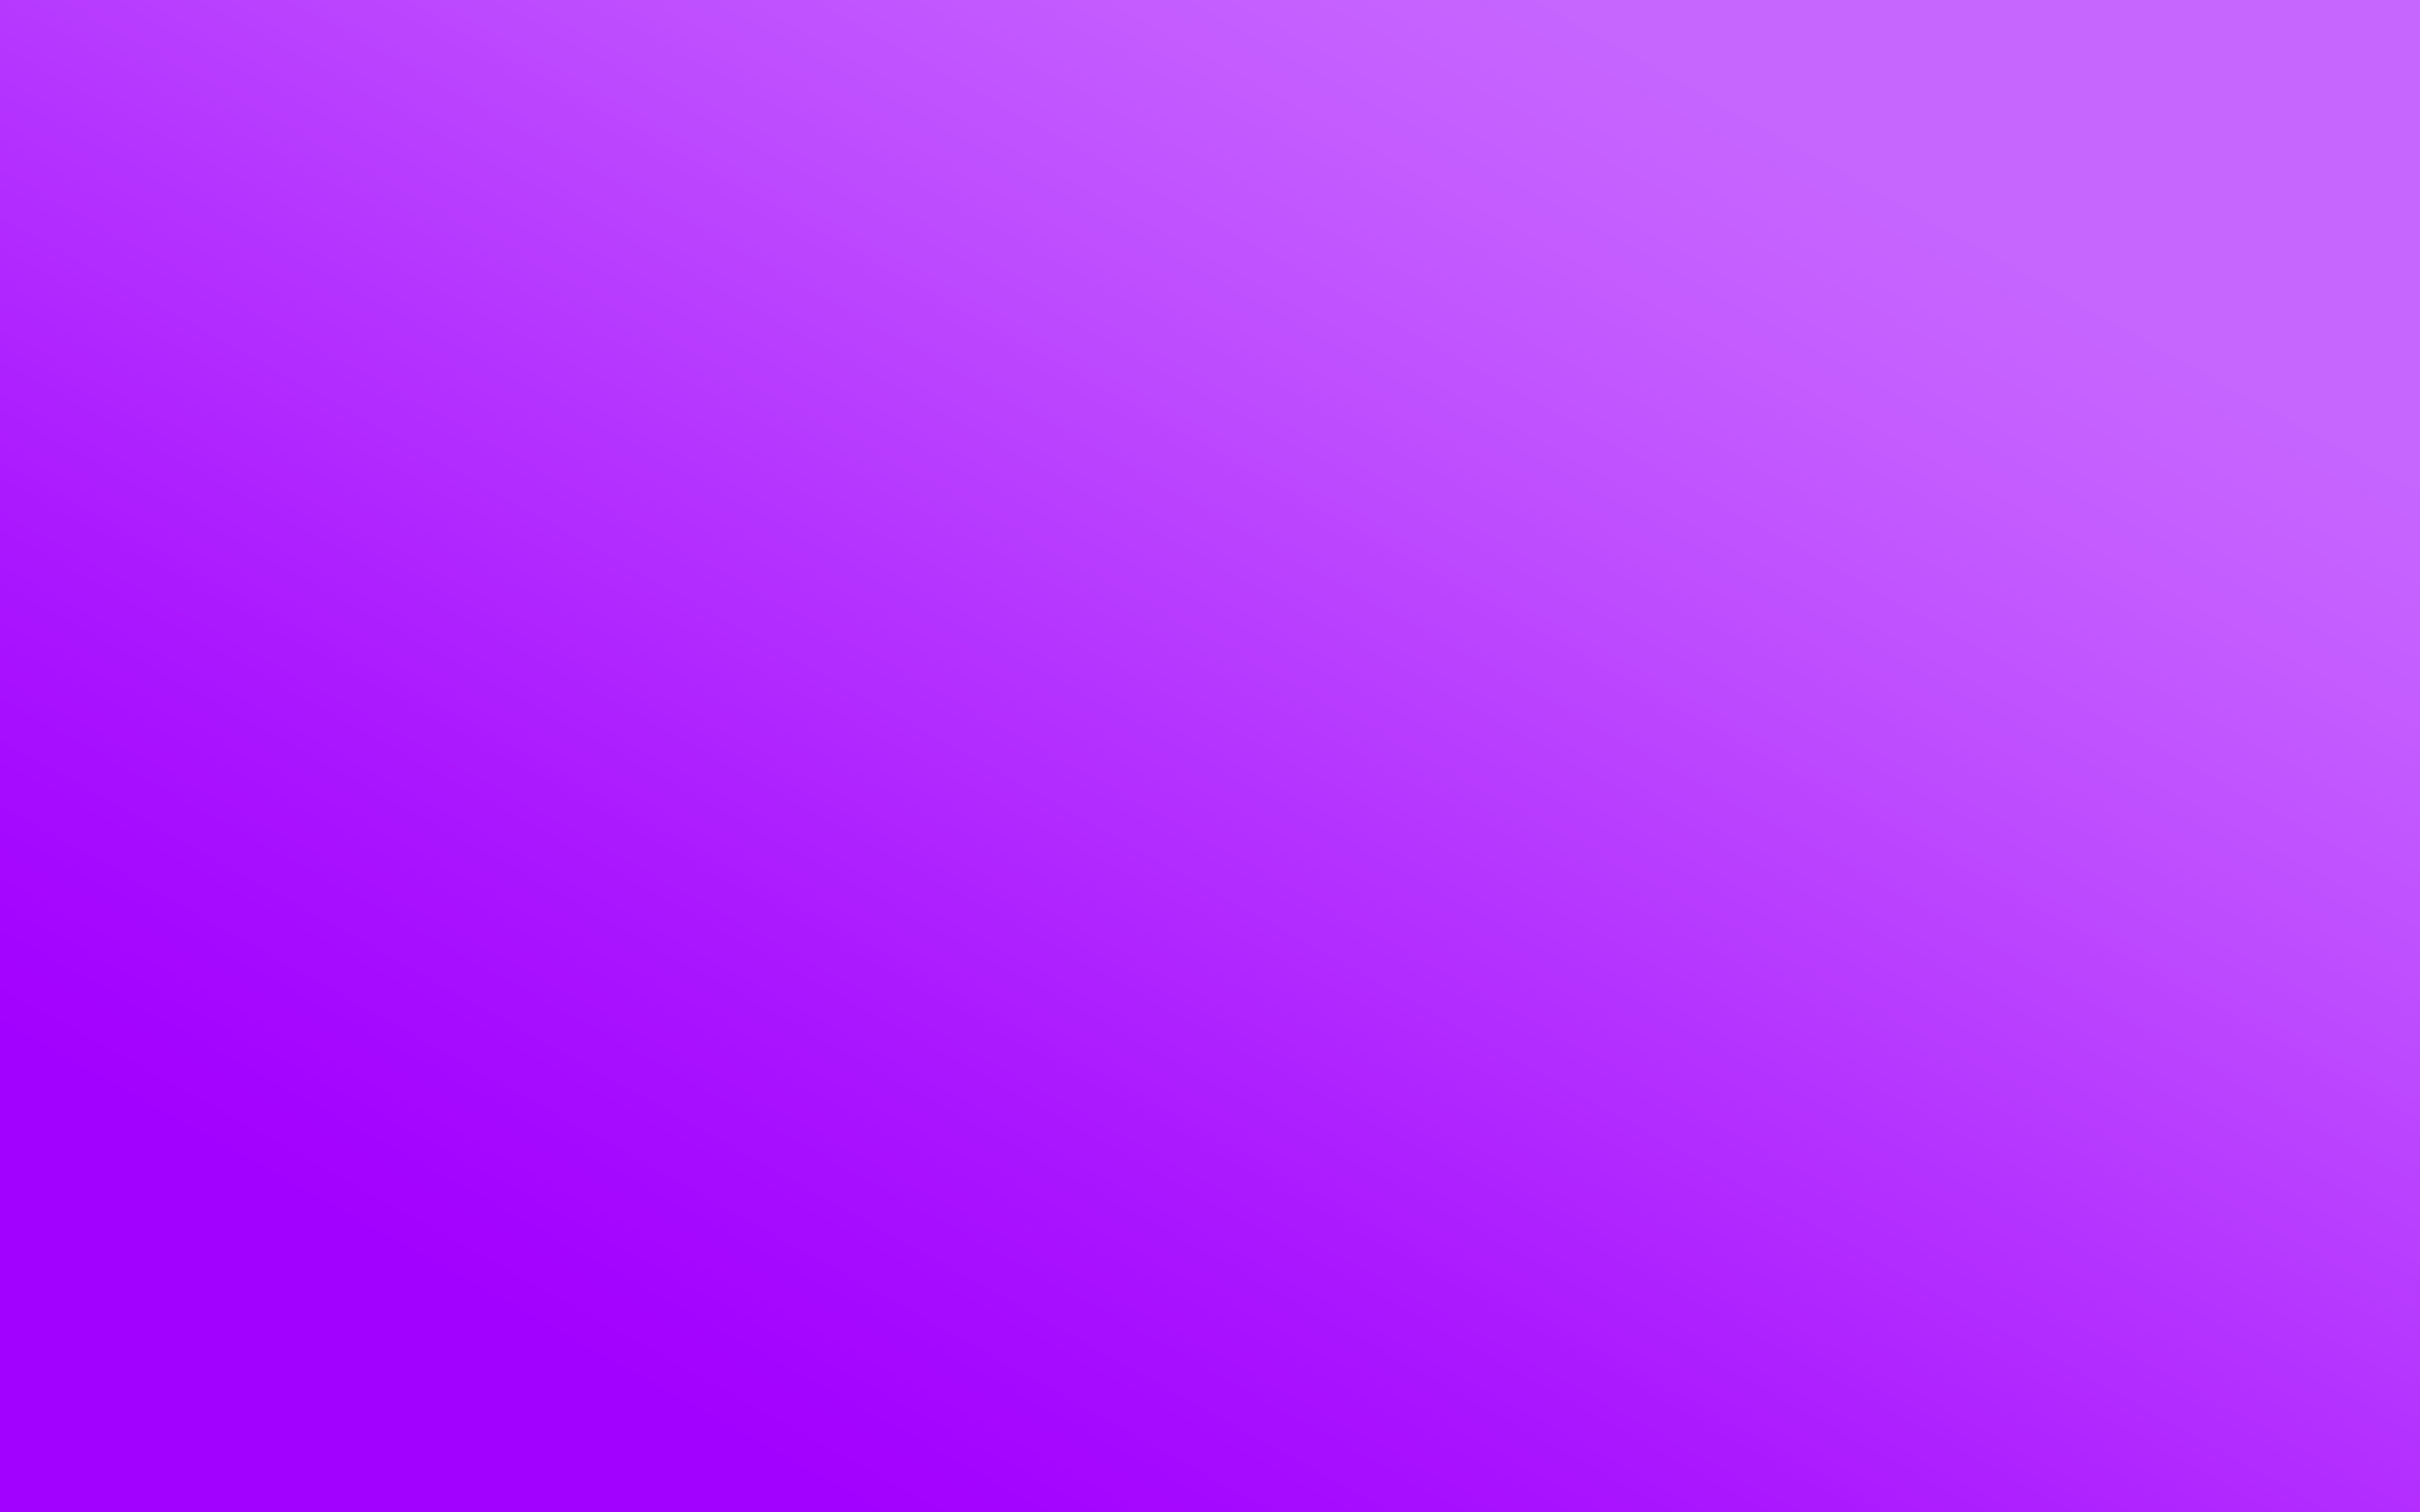 Solid-colors-purple-wallpaper-hd